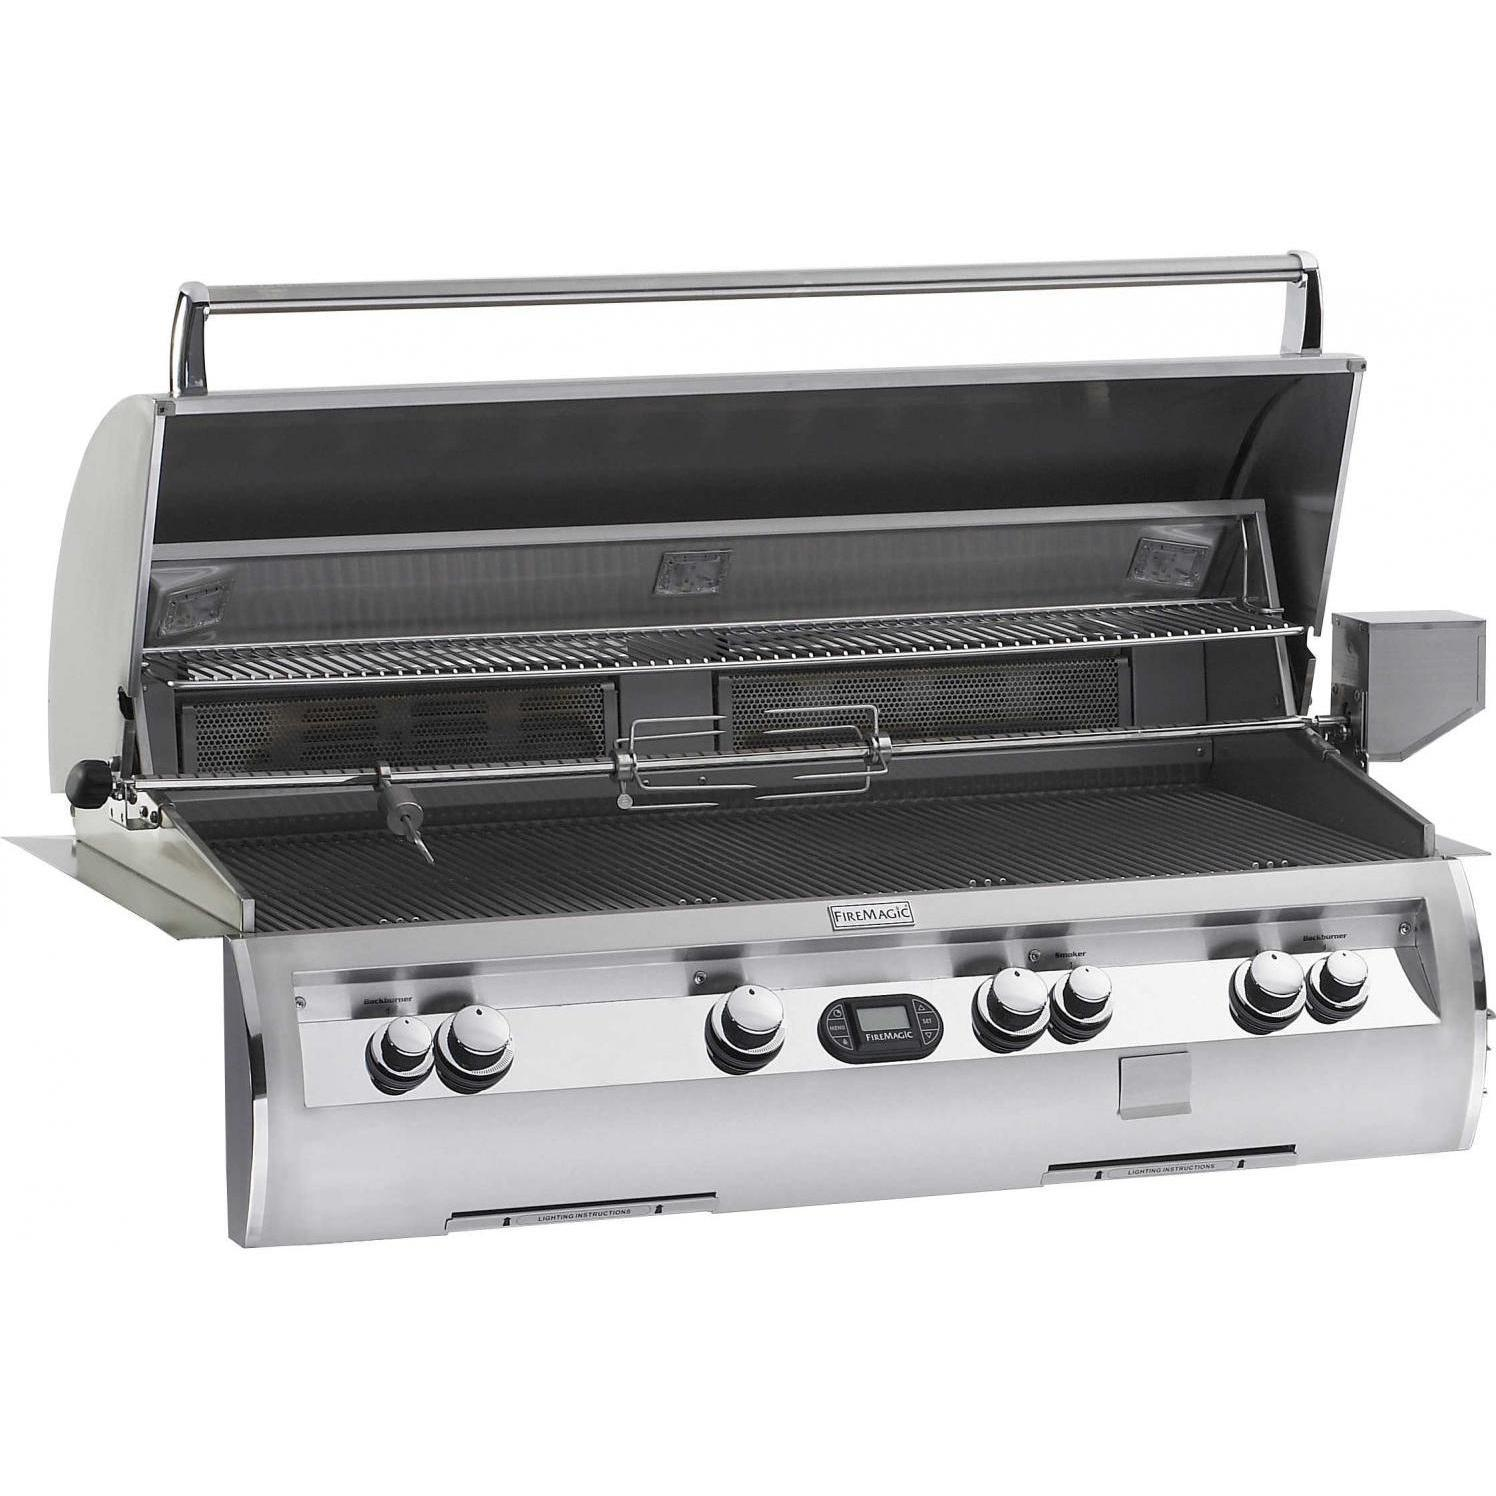 Fire magic grill griddle outdoor grills natural gas